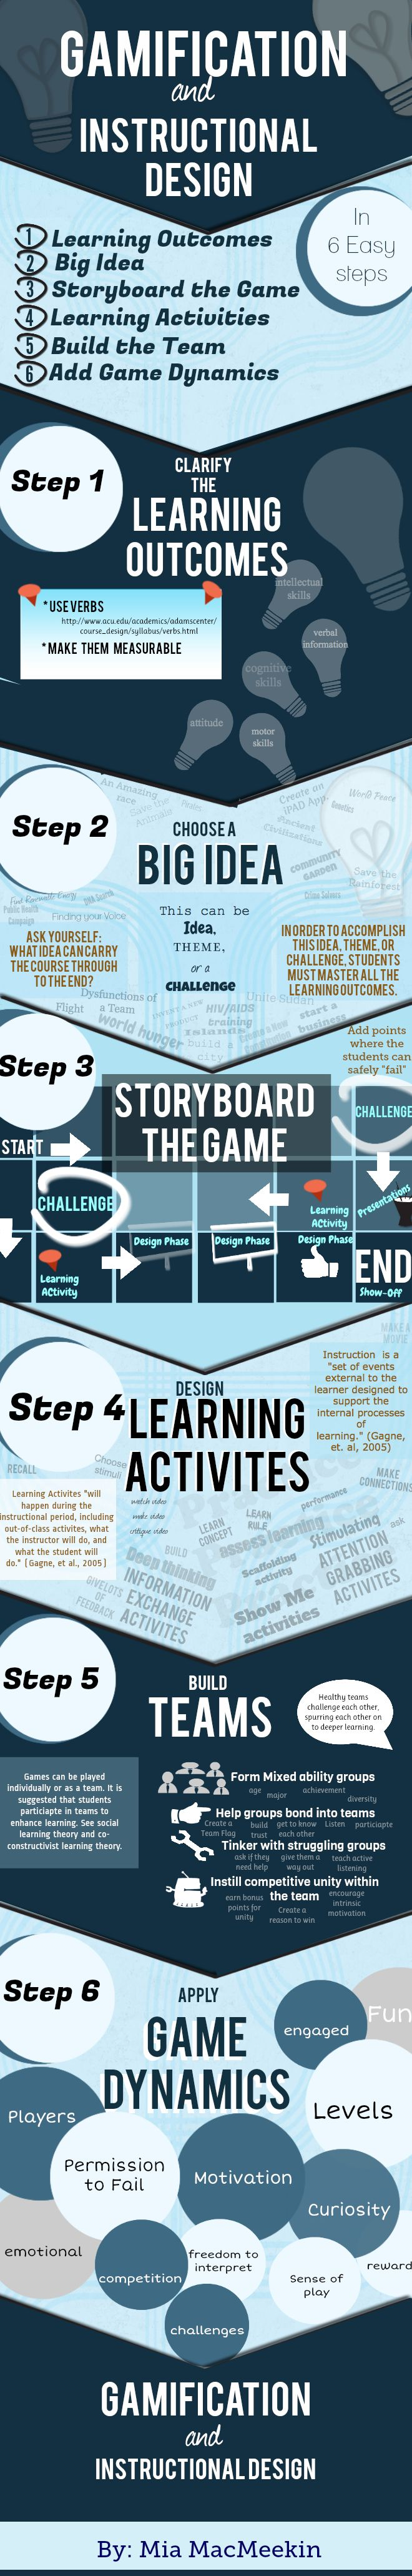 Gamiification and Instructional Design by Mia MacMeekin http://anethicalisland.wordpress.com/2013/03/08/gamification-and-instructional-design/